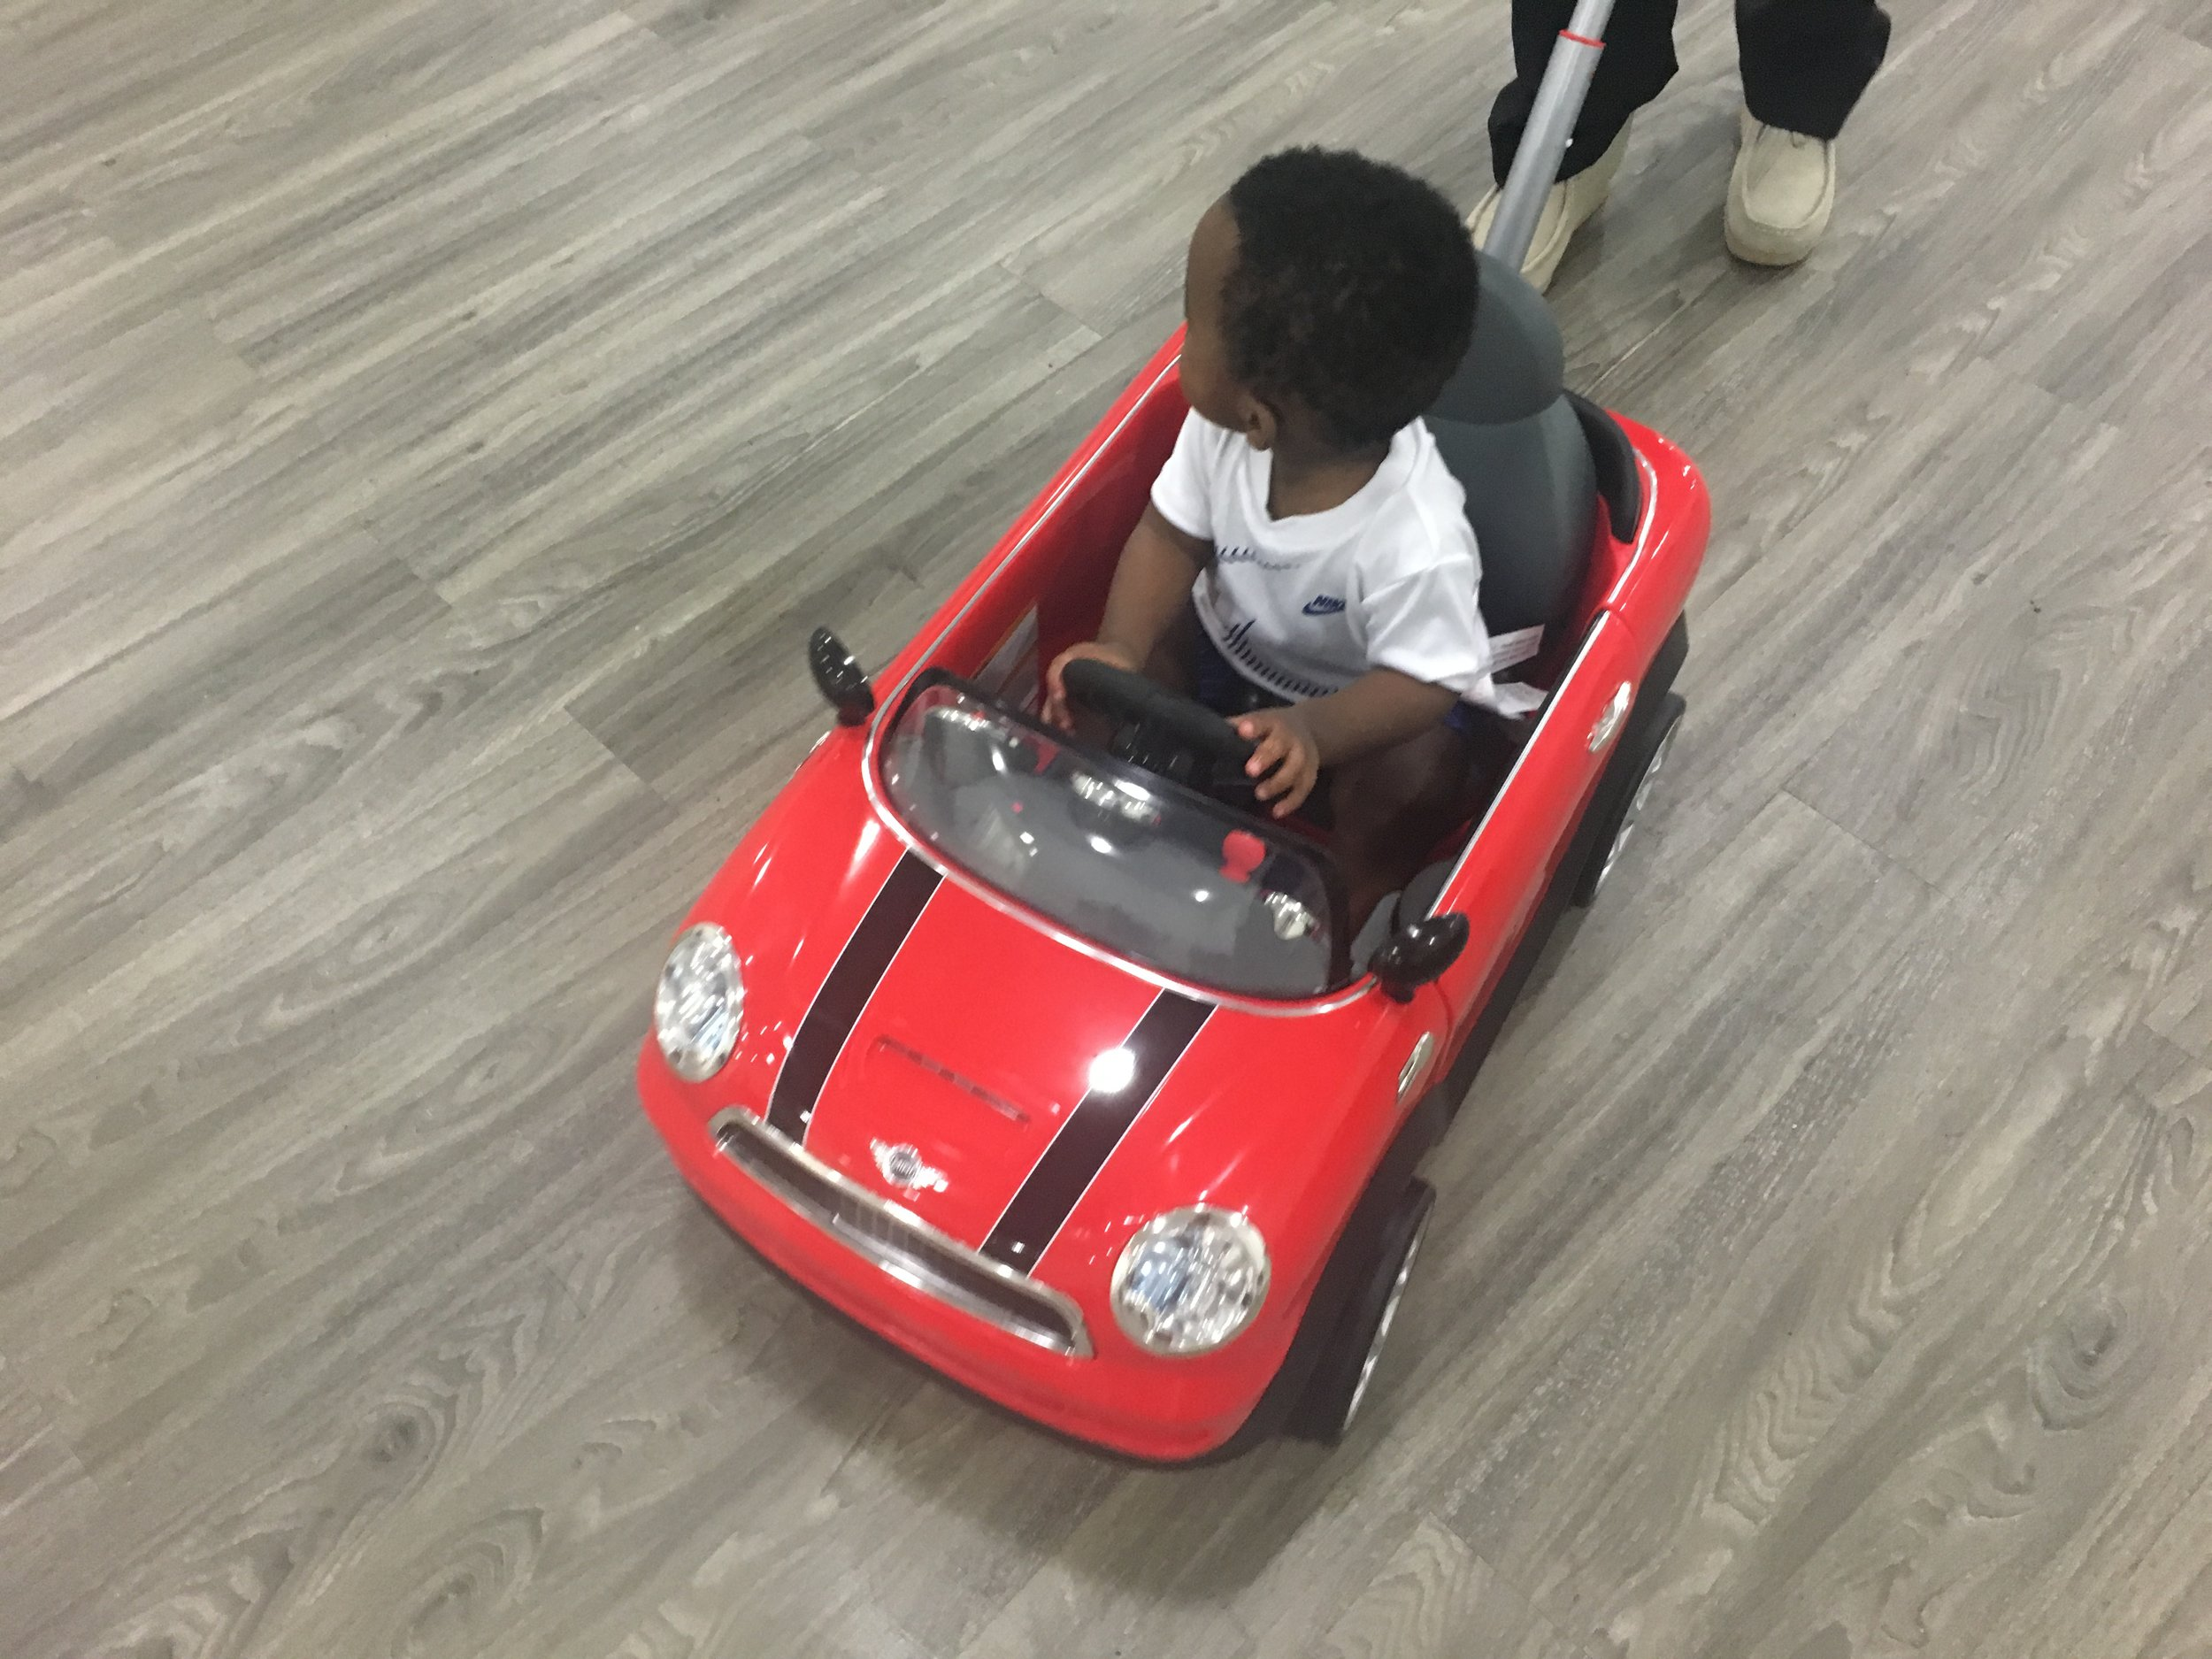 leaving the party in the new whip! lol